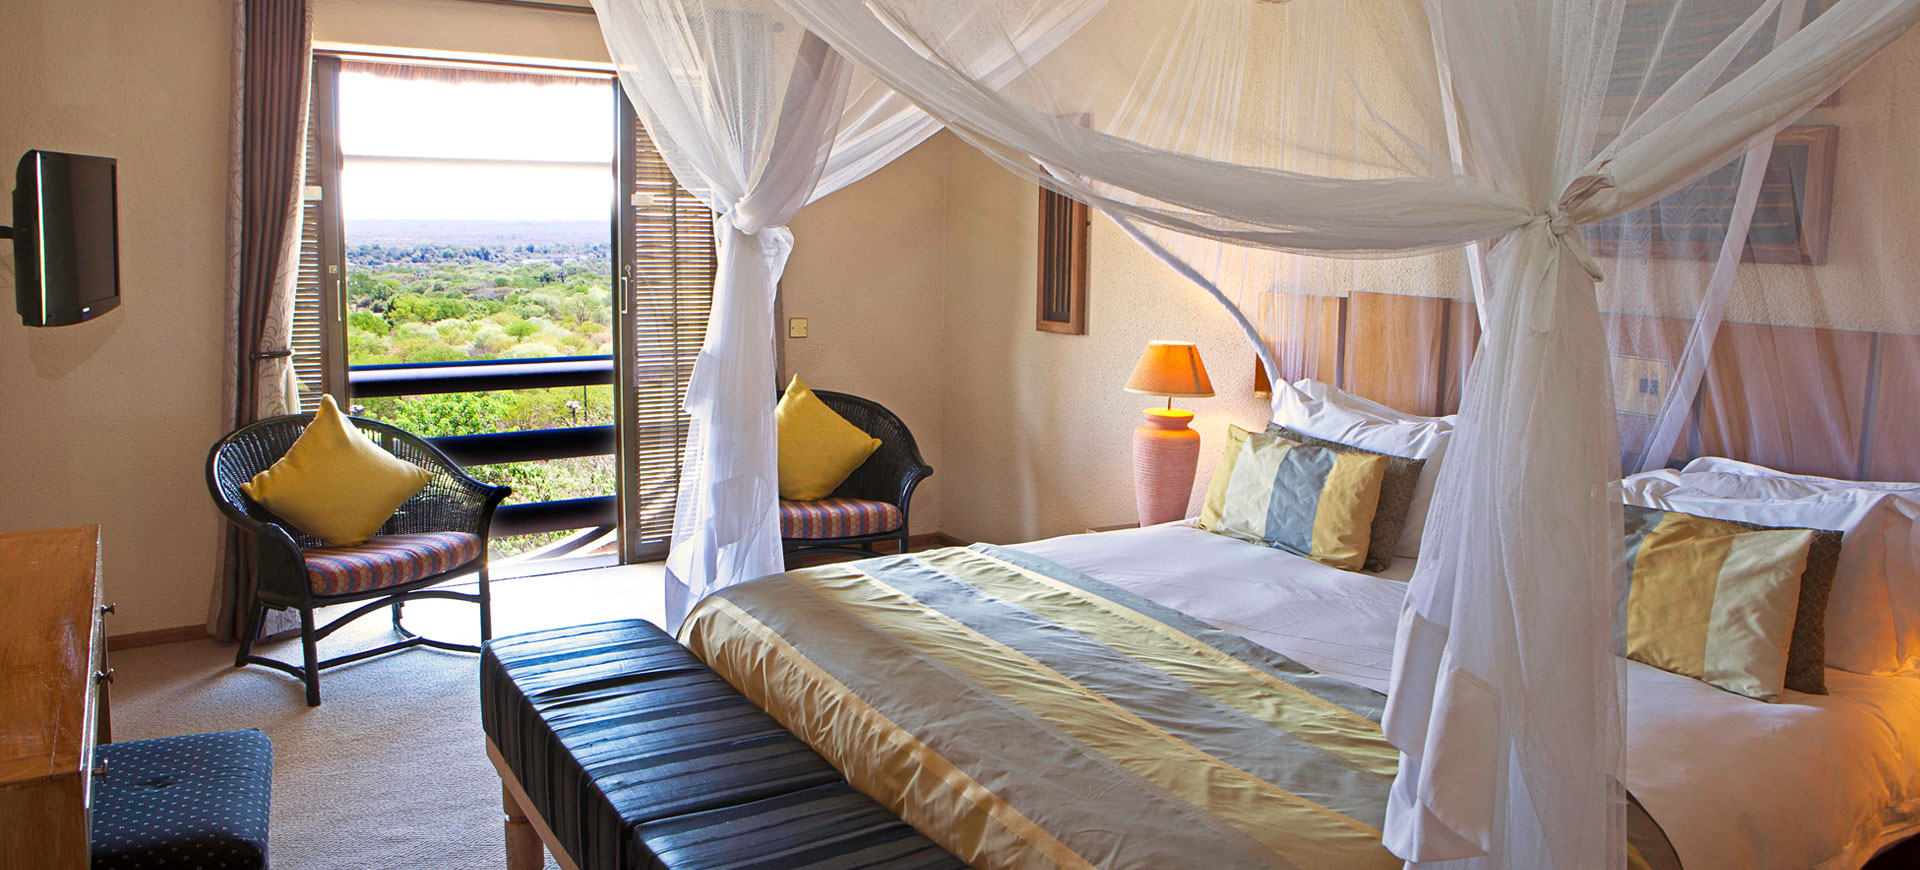 Elephant Hills Hotel Victoria Falls Conference Venue Accommodation